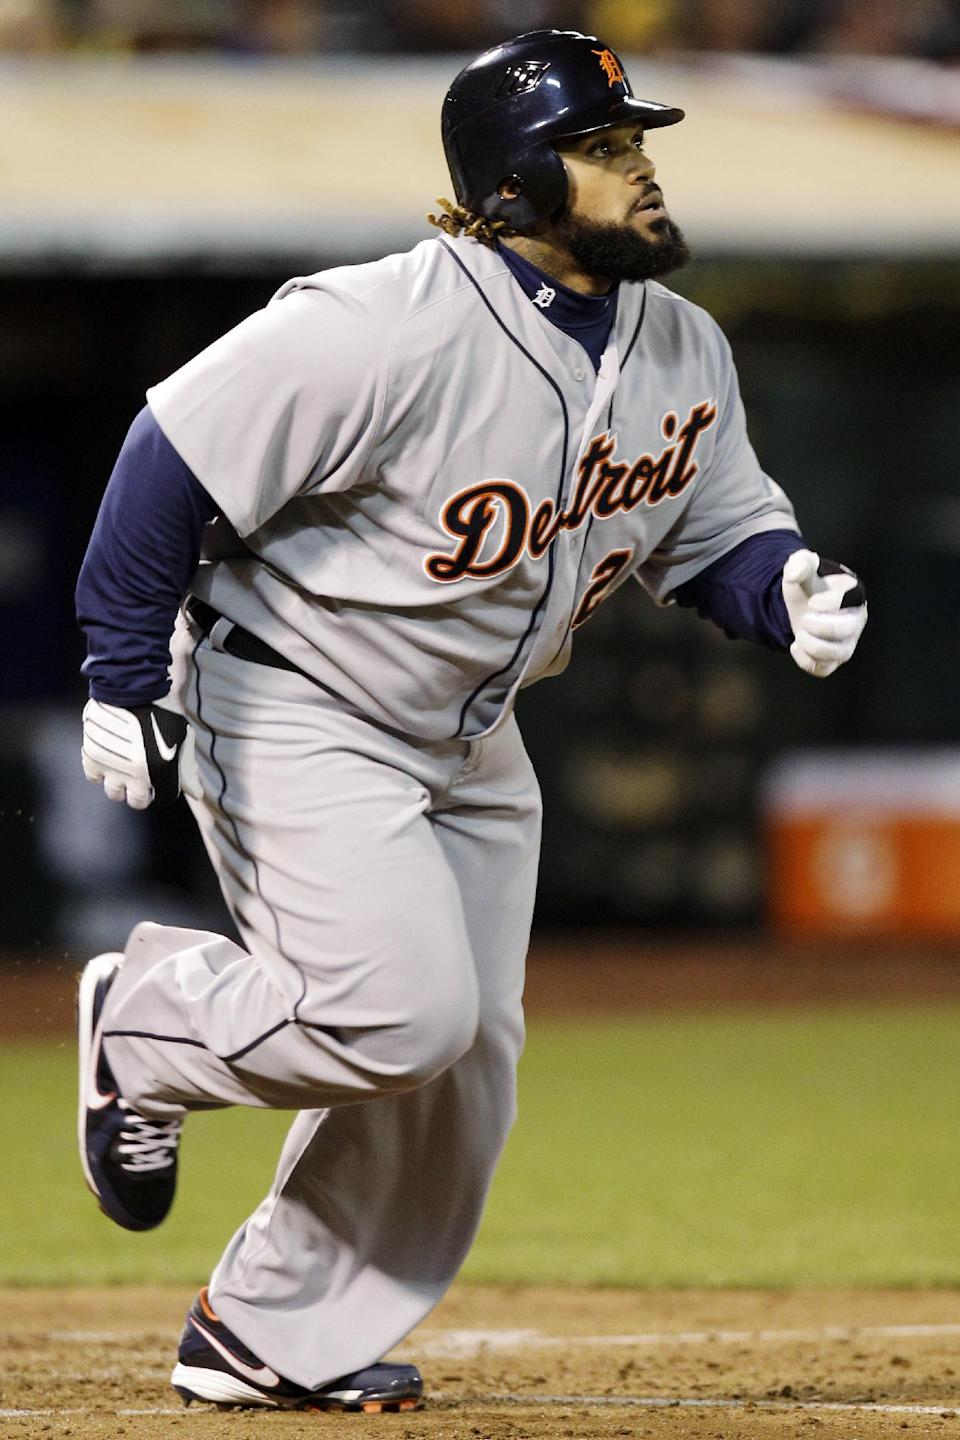 Detroit Tigers' Prince Fielder watches the flight of his solo home run in the fourth inning of Game 4 of their American League division baseball series against the Oakland Athletics in Oakland, Calif., Wednesday, Oct. 10, 2012. (AP Photo/Ben Margot)